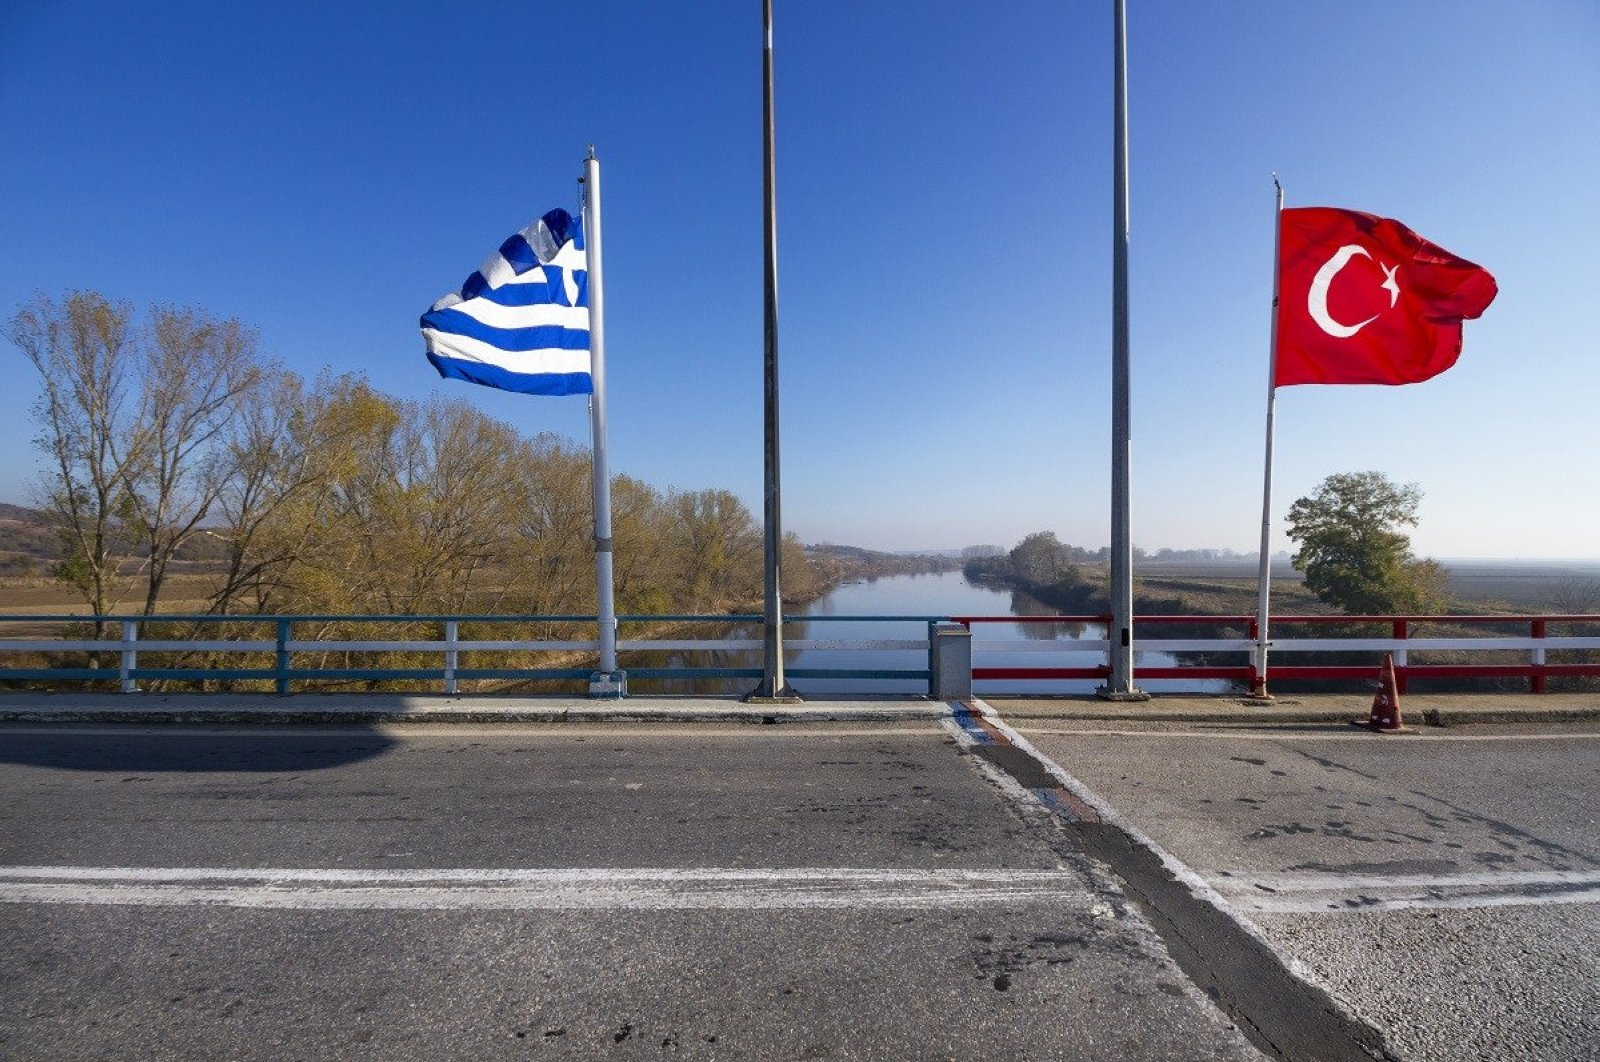 The flags of Turkey and Greece as seen at a border gate.